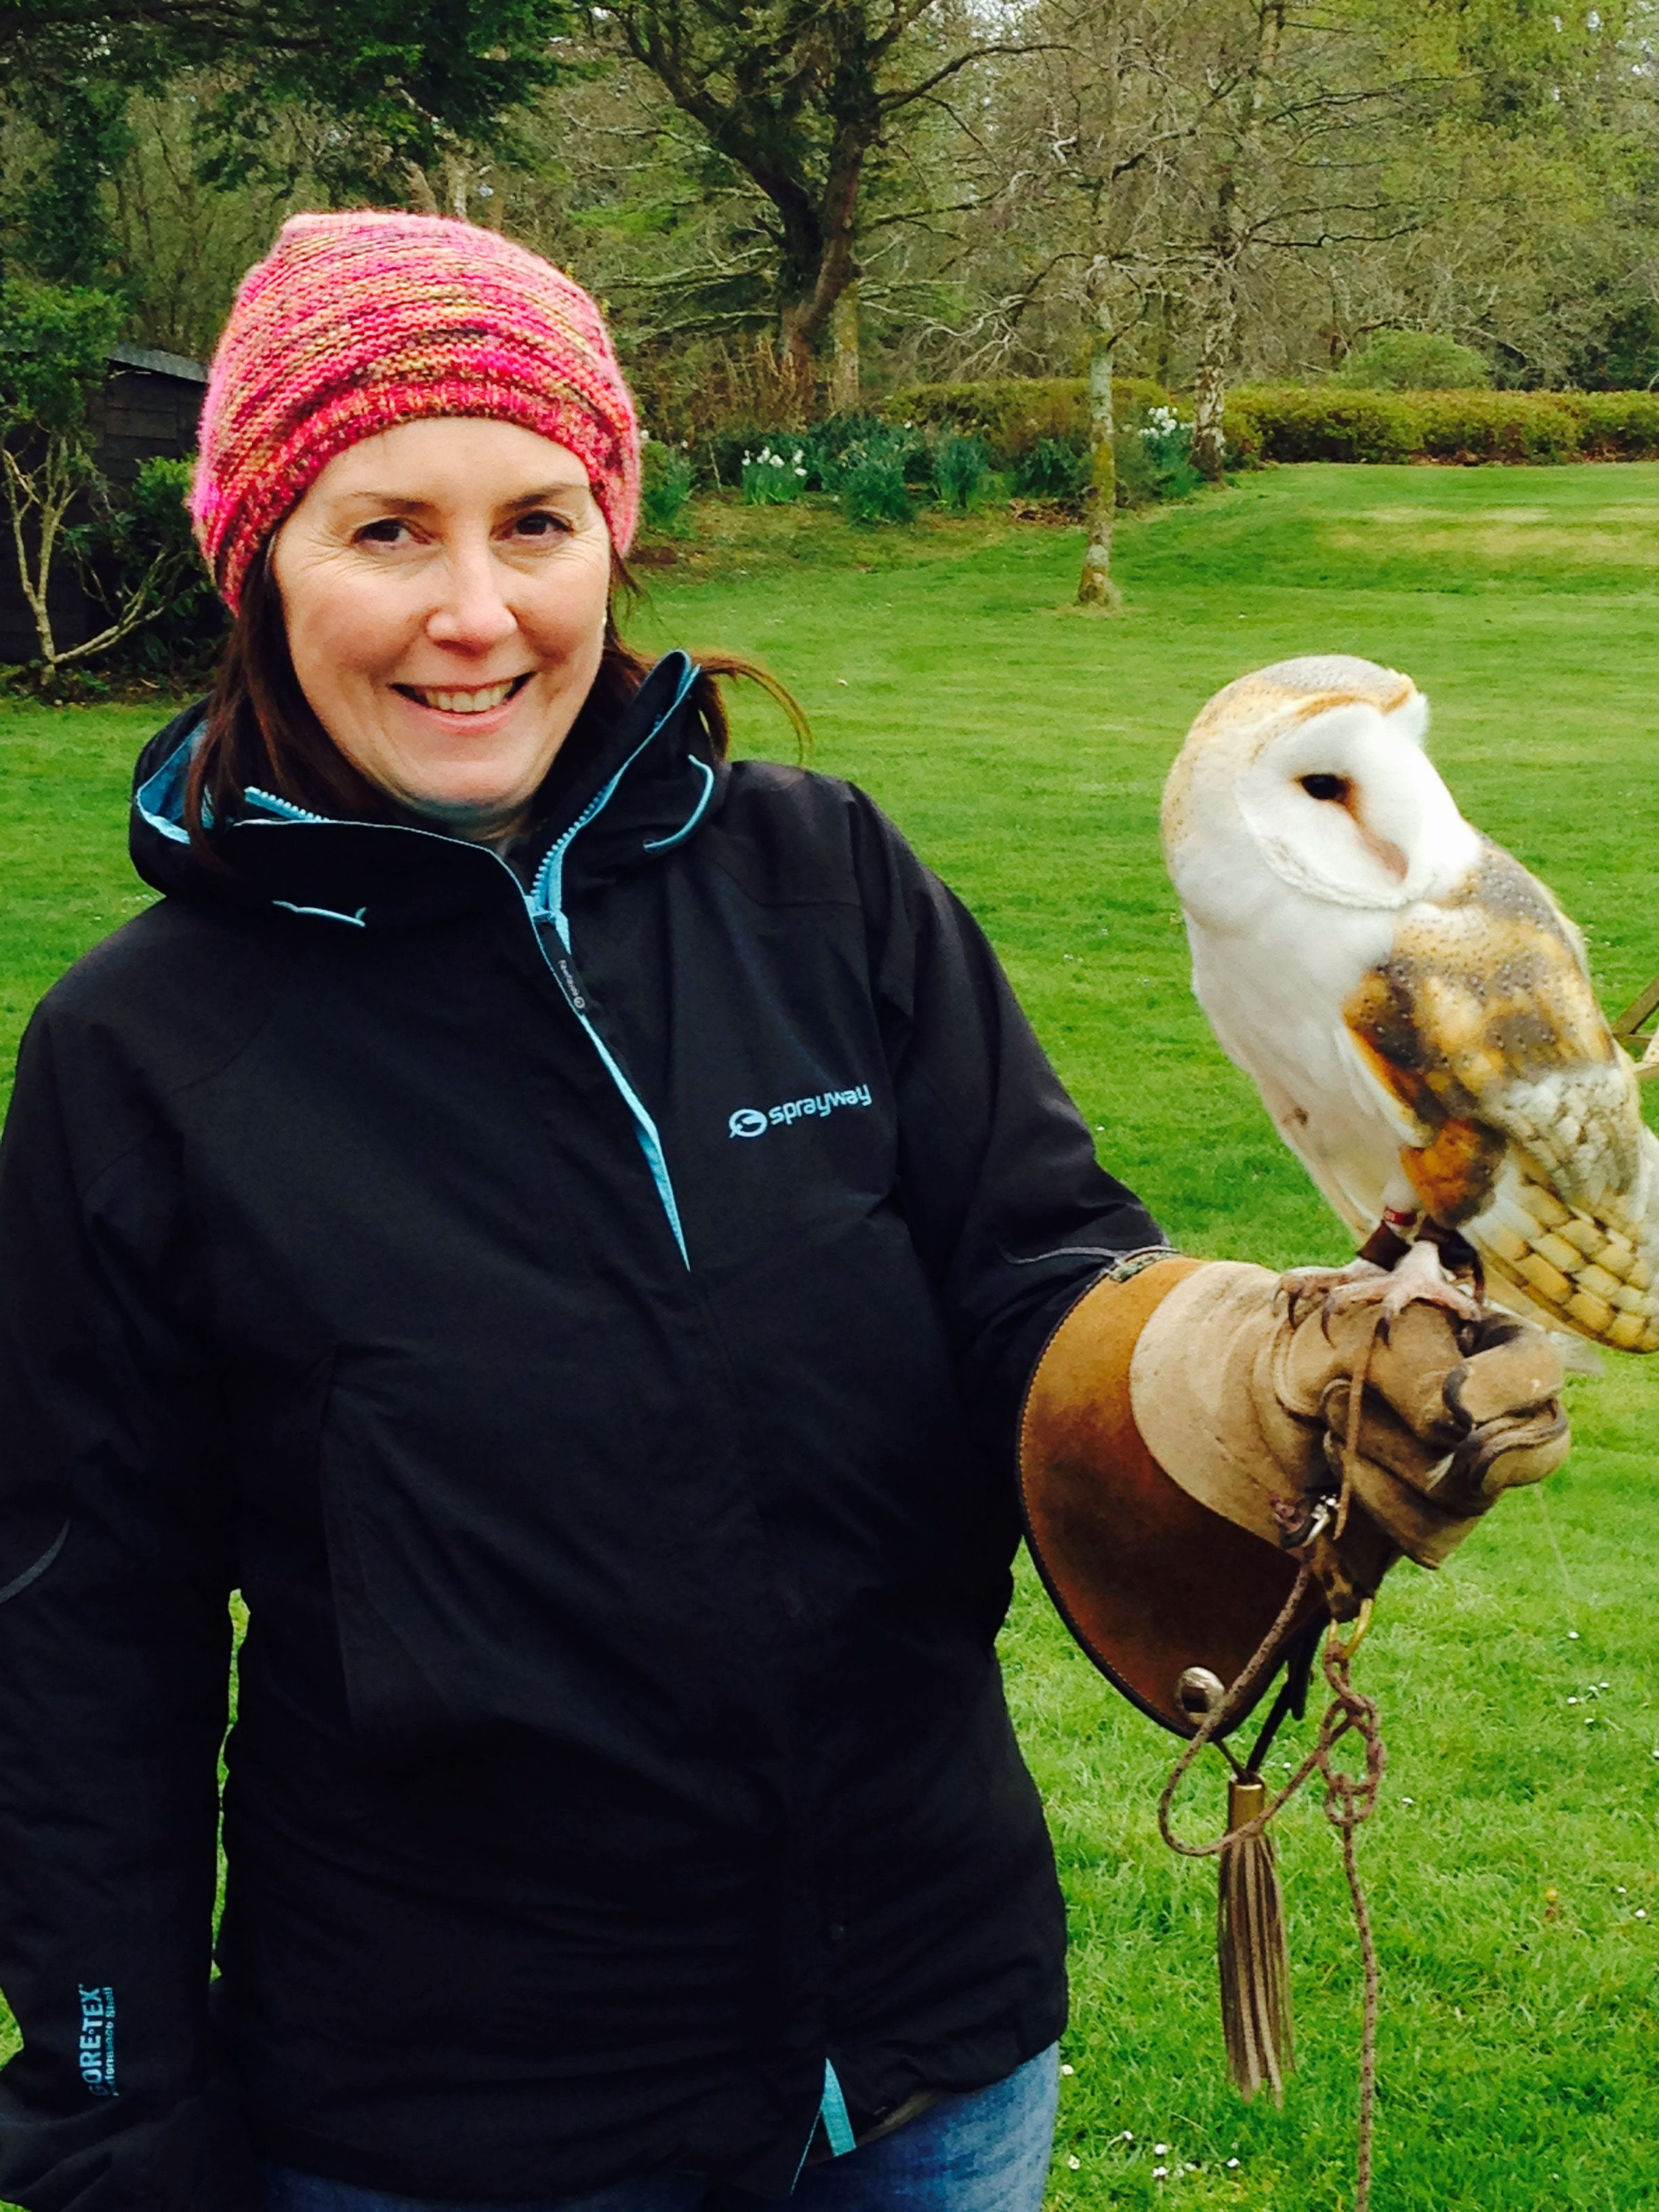 At the World Owl Trust in Muncaster, being a keeper for a day with Tithe the Barn Owl.